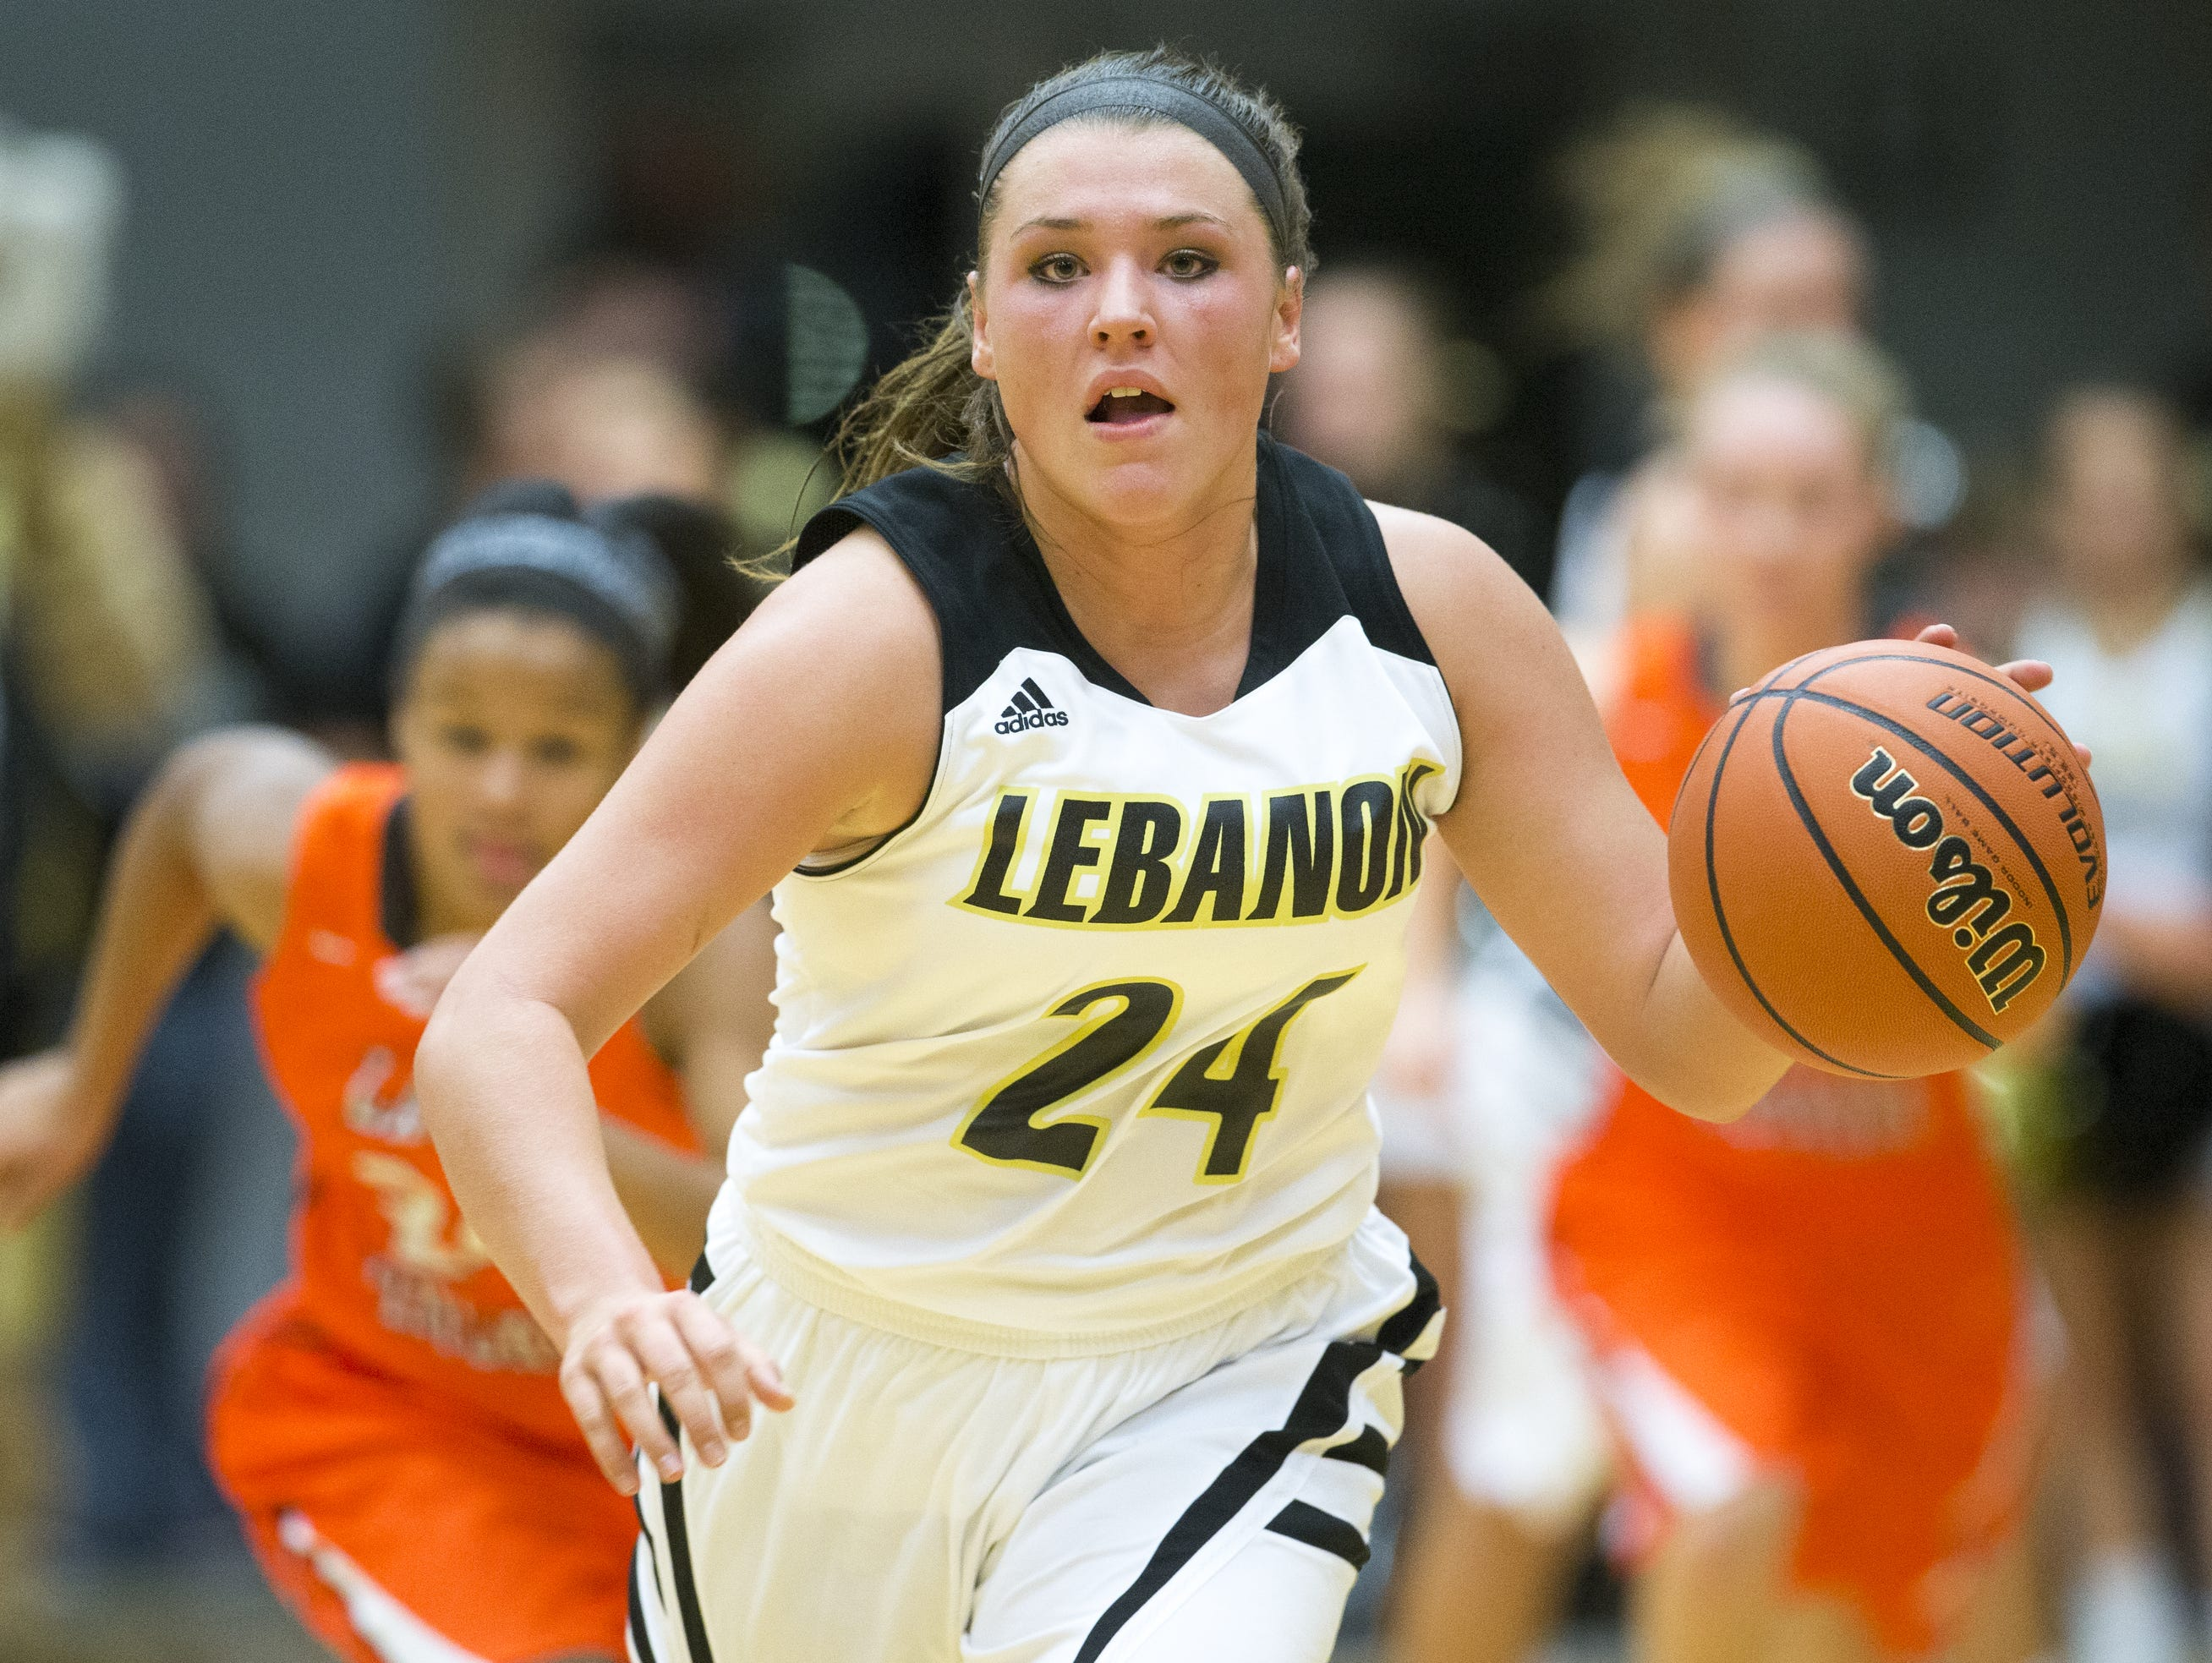 Kristen Spolyar heads upcourt after stealing a ball as she and her Lebanon High School team plays Hamilton Heights, Lebanon, Monday, Nov. 30, 2015. Spolyar, who has scored more than 2,000 points in her high school career, finished with 45 this game.